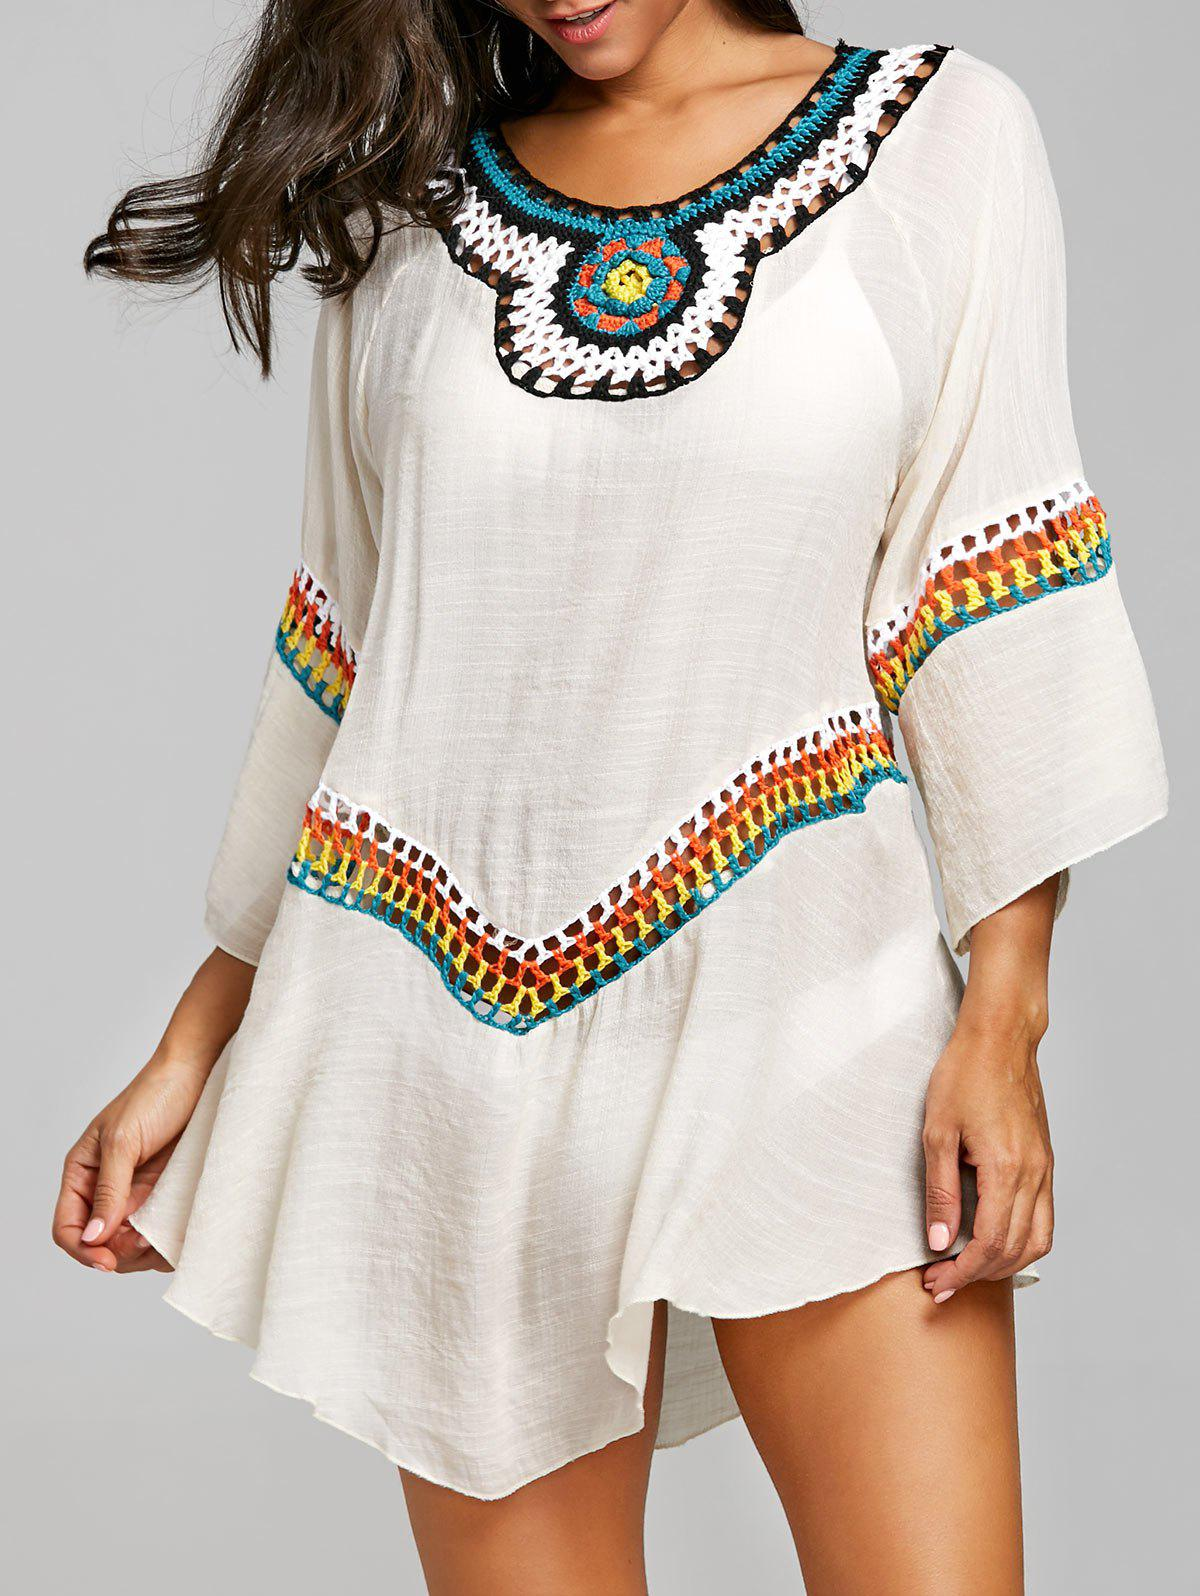 Shop Crochet Panel Tunic Asymmetrical Cover Up Top